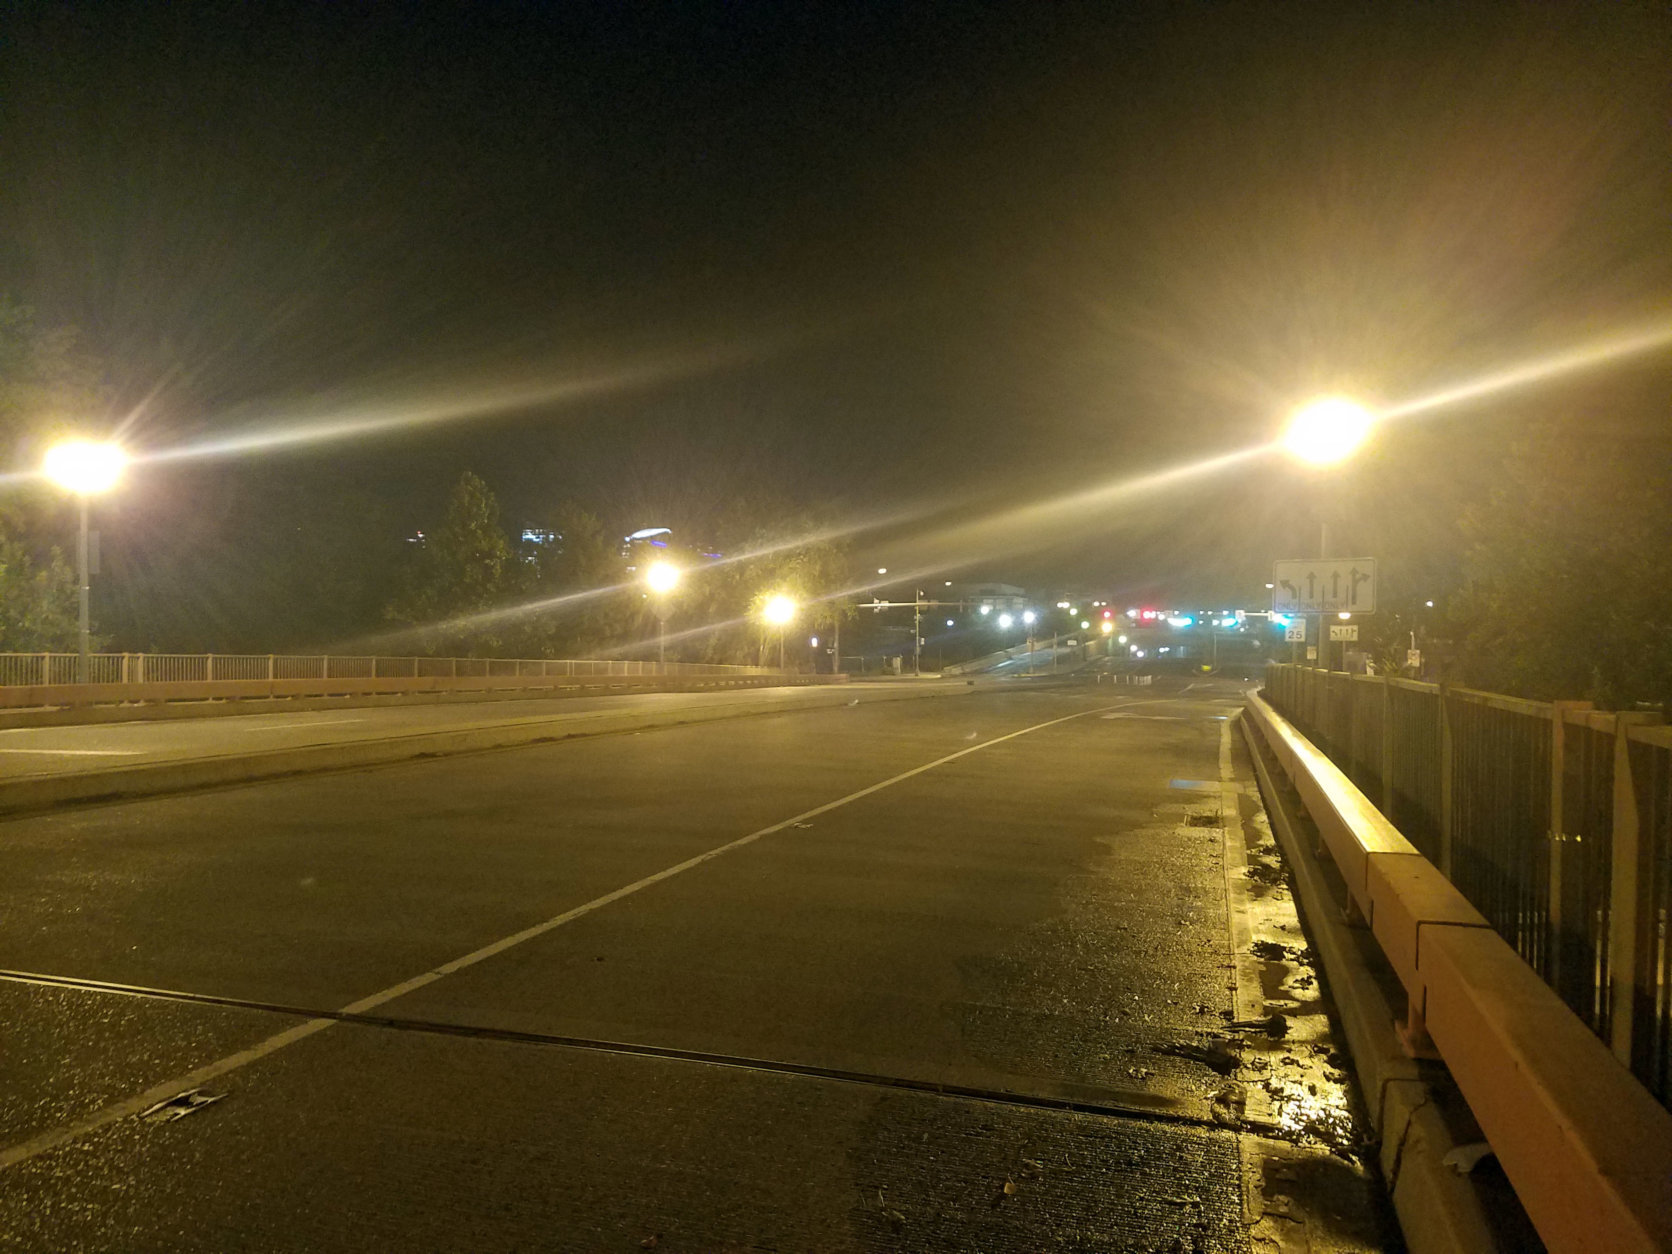 A headless man is said to appear on the K Street Bridge on starless nights. (WTOP/Will Vitka)